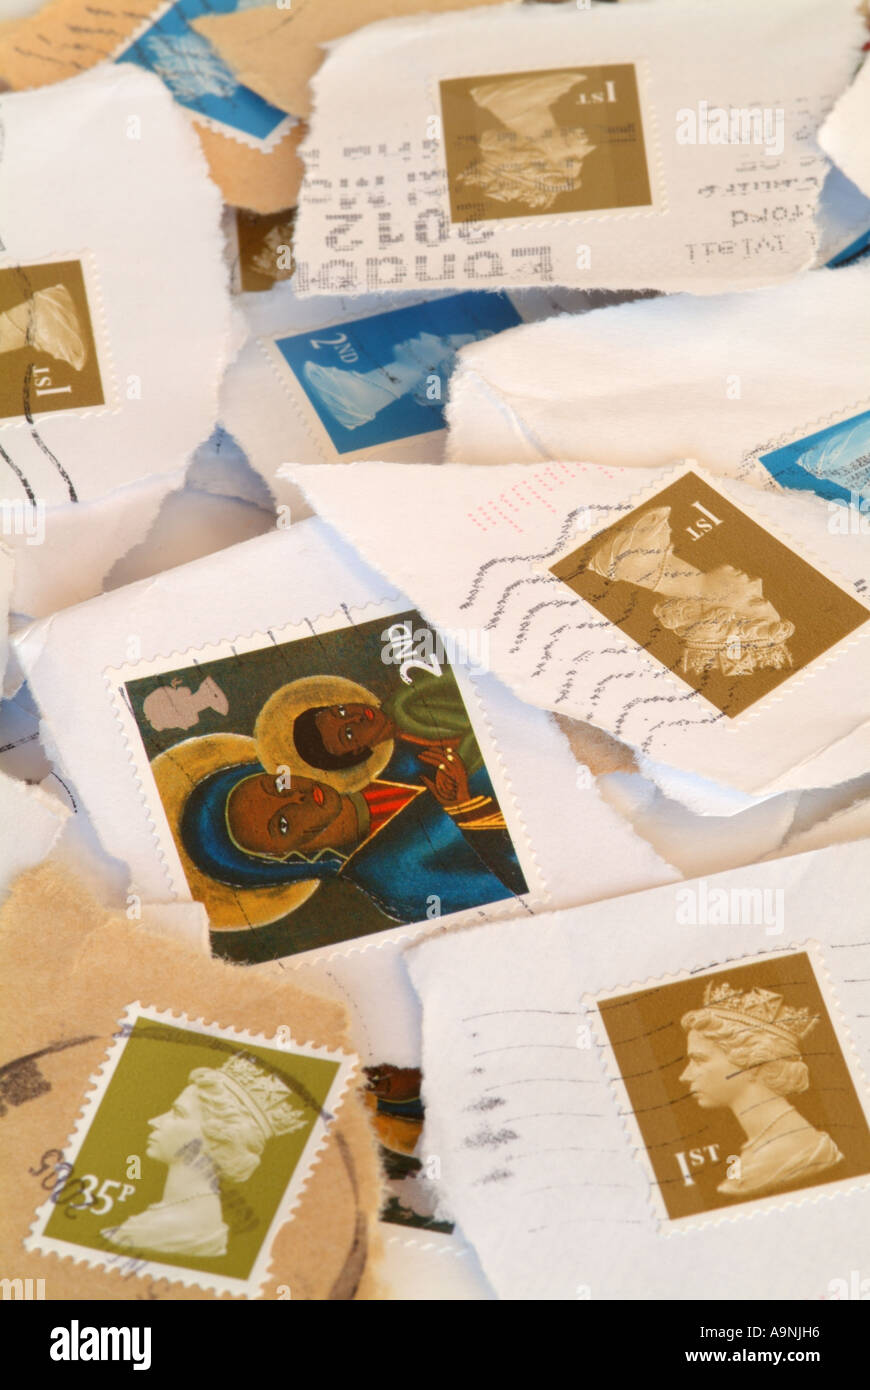 A pile of UK stamps for recycling. - Stock Image